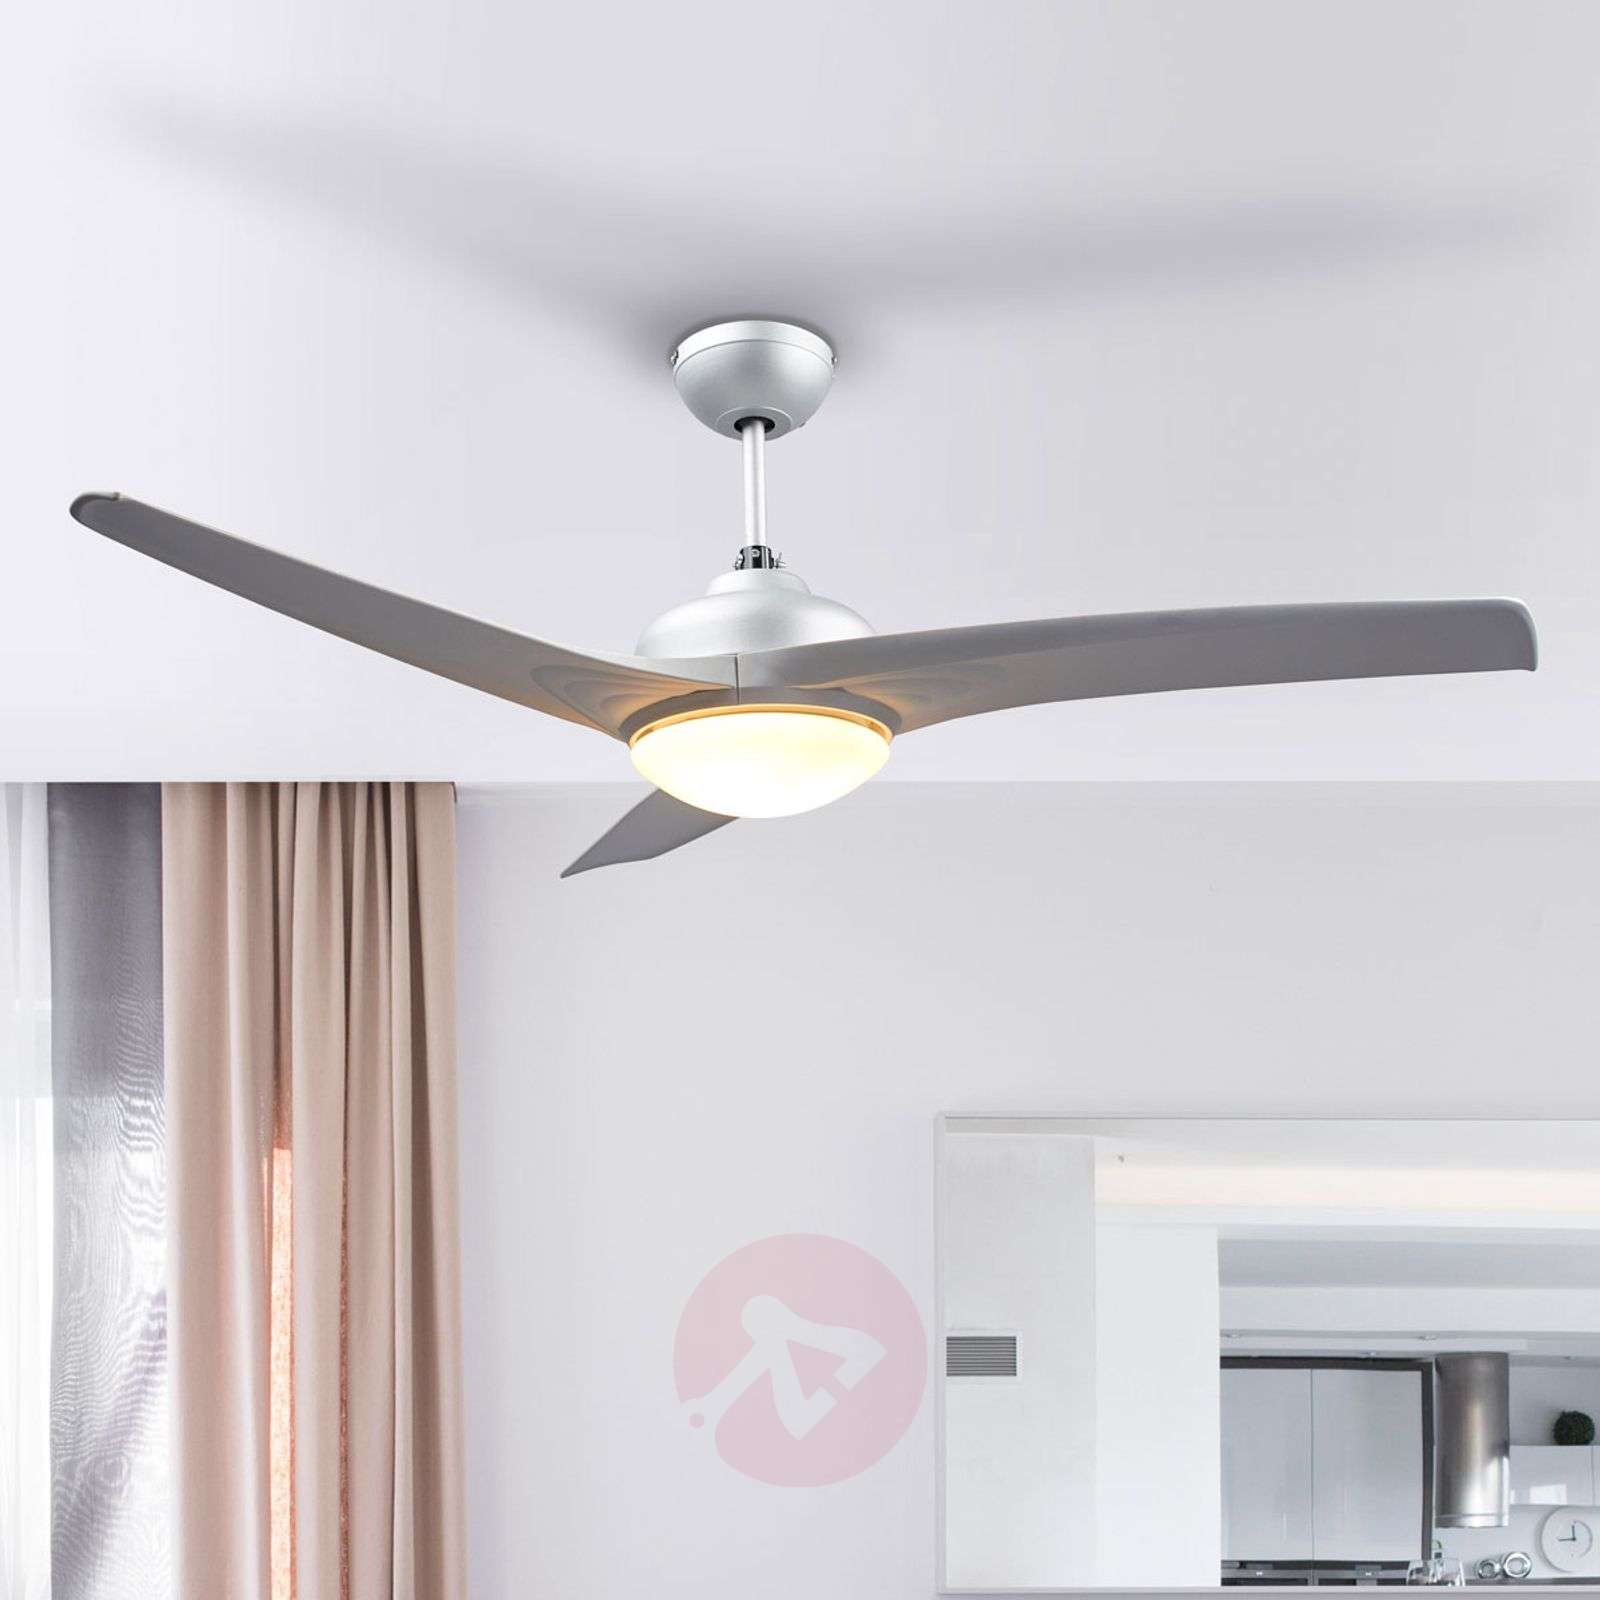 Emanuel silver ceiling fan with light-4018104-05